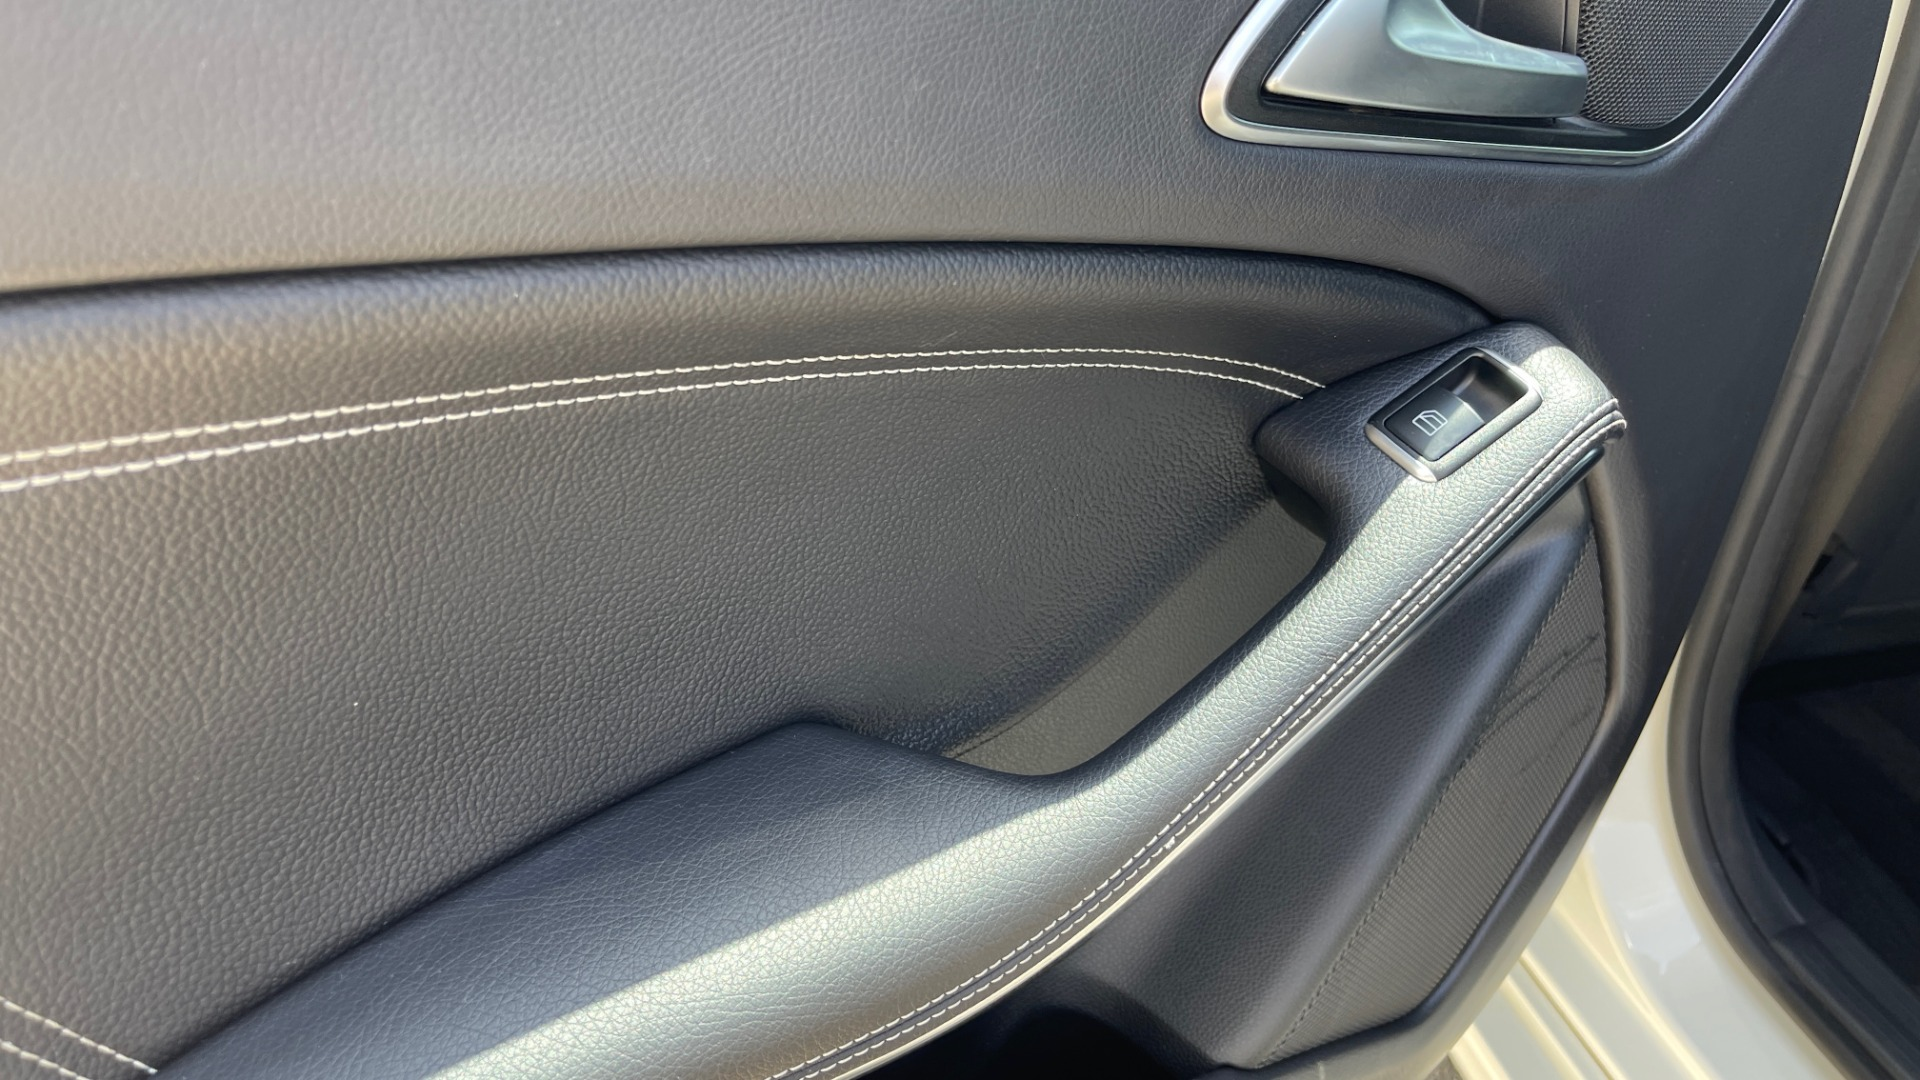 Used 2014 Mercedes-Benz CLA-Class 250 PREMIUM / NAV / MULTIMEDIA PKG / PANO-ROOF / REARVIEW for sale $19,495 at Formula Imports in Charlotte NC 28227 44